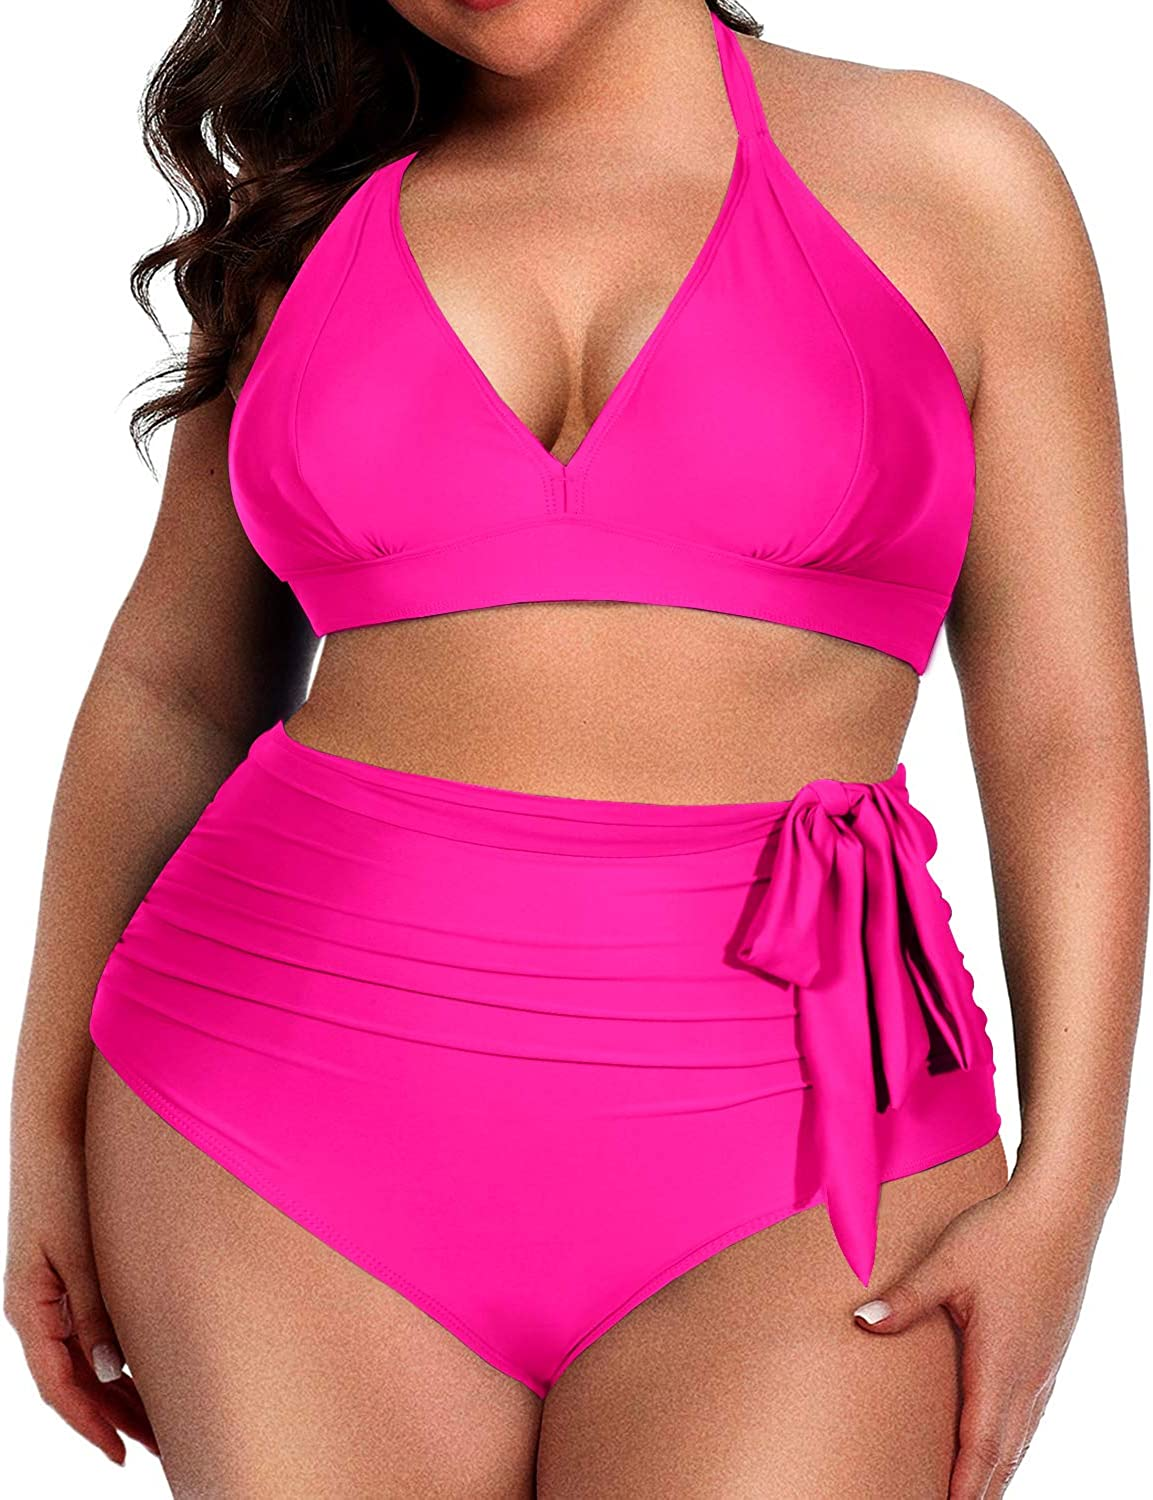 Daci Women Plus Size Bikini High Waisted Halter V Neck Ruched Tummy Control Two Piece Swimsuits